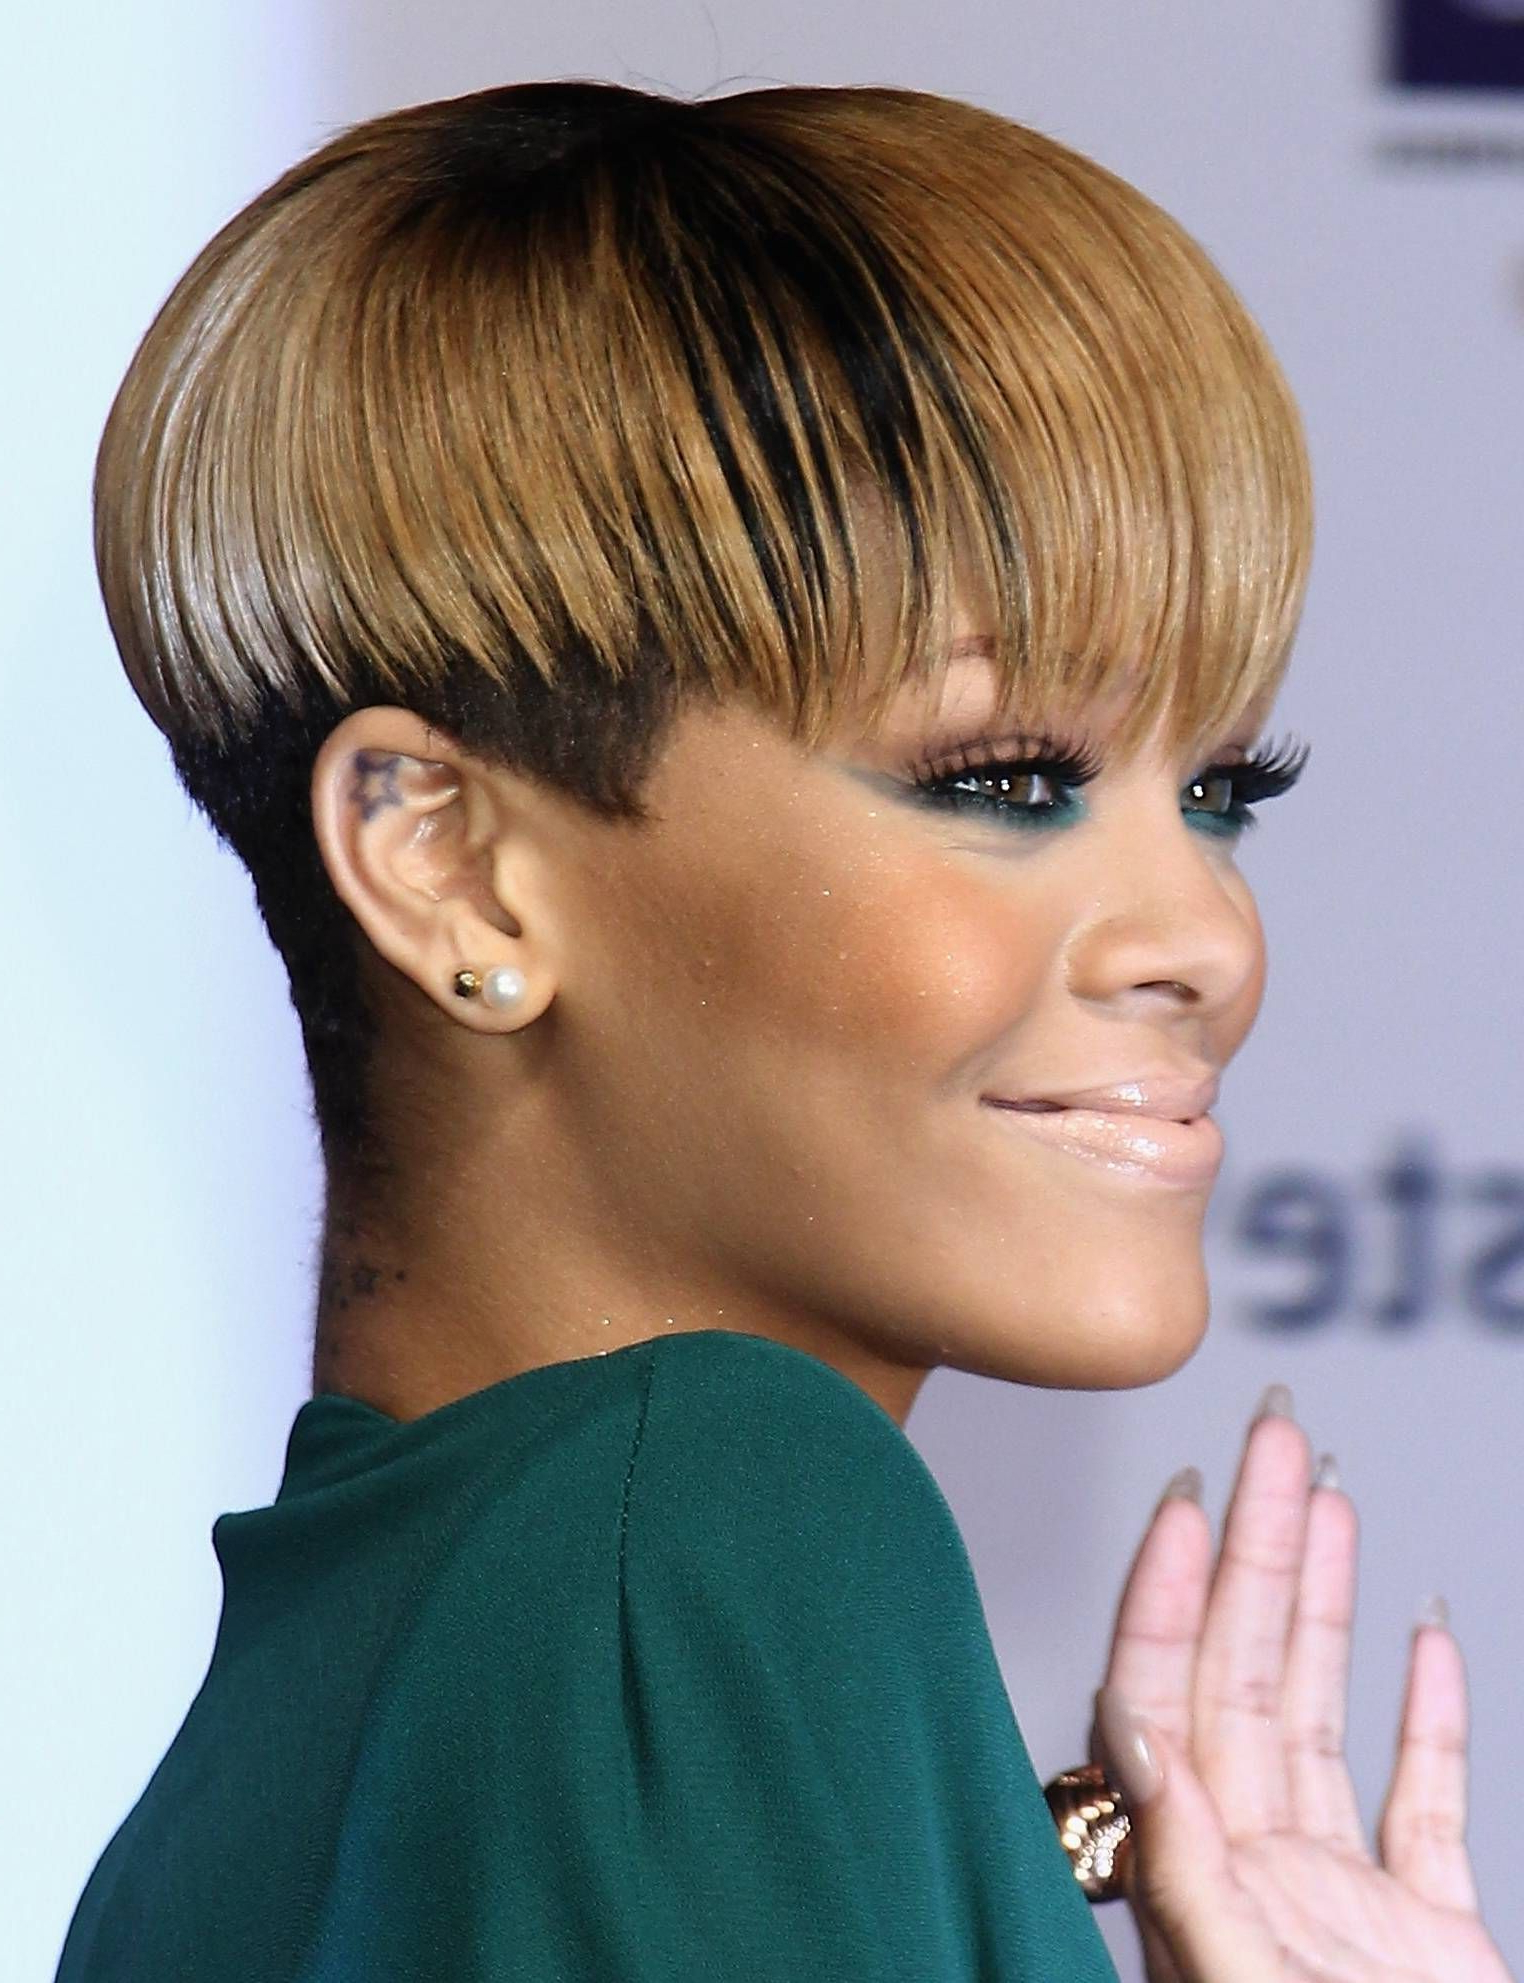 Short Haircuts: The Best Edgy Styles For Black Women In 2018 Inside Black Short Haircuts (View 5 of 25)